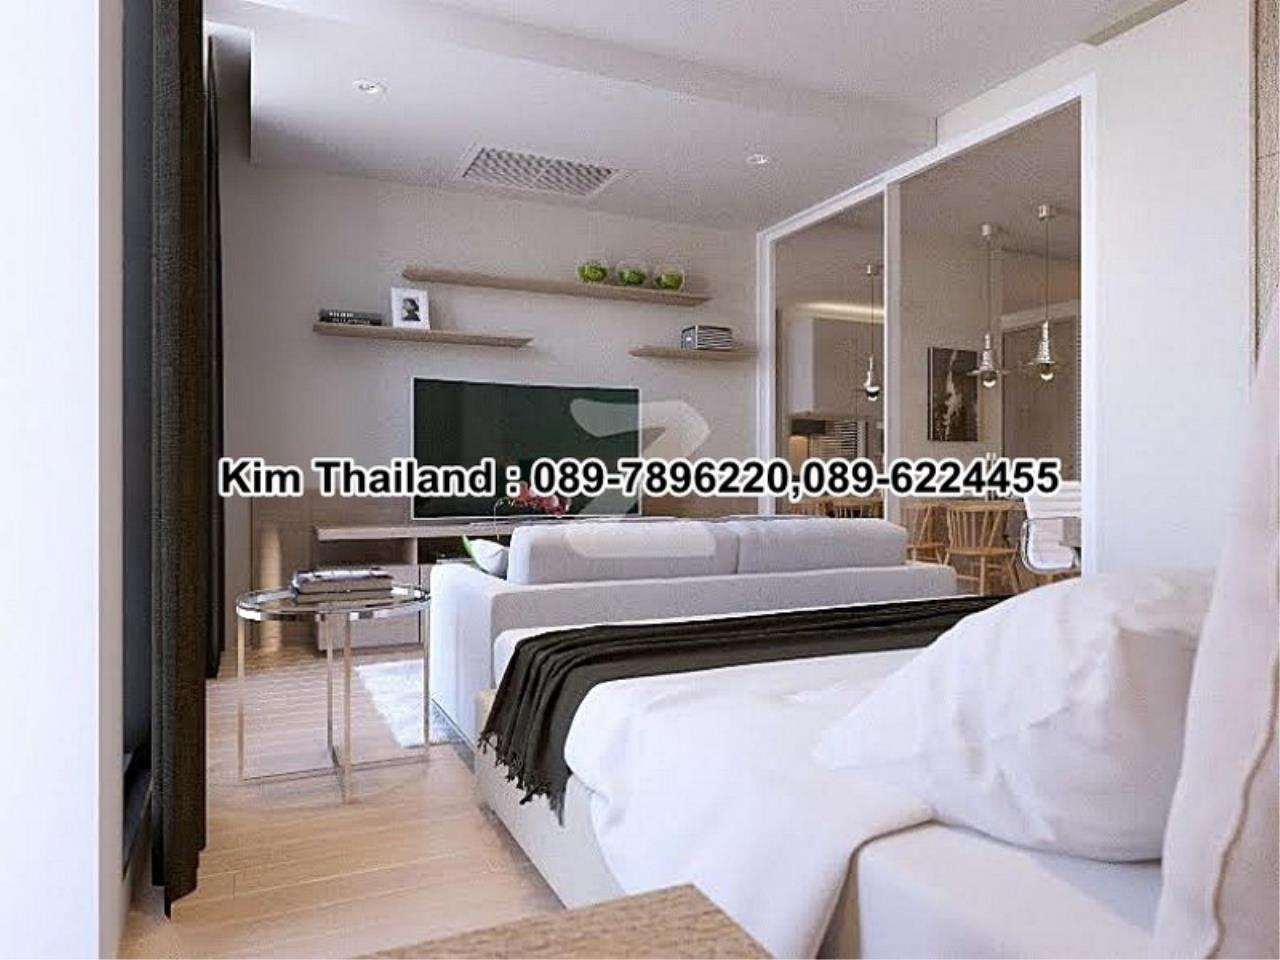 BKKcondorental Agency's For sale, Condo Noble Ploenchit , 49 s.qm. 1 bathroom. Price 14.5 Million baht. 4